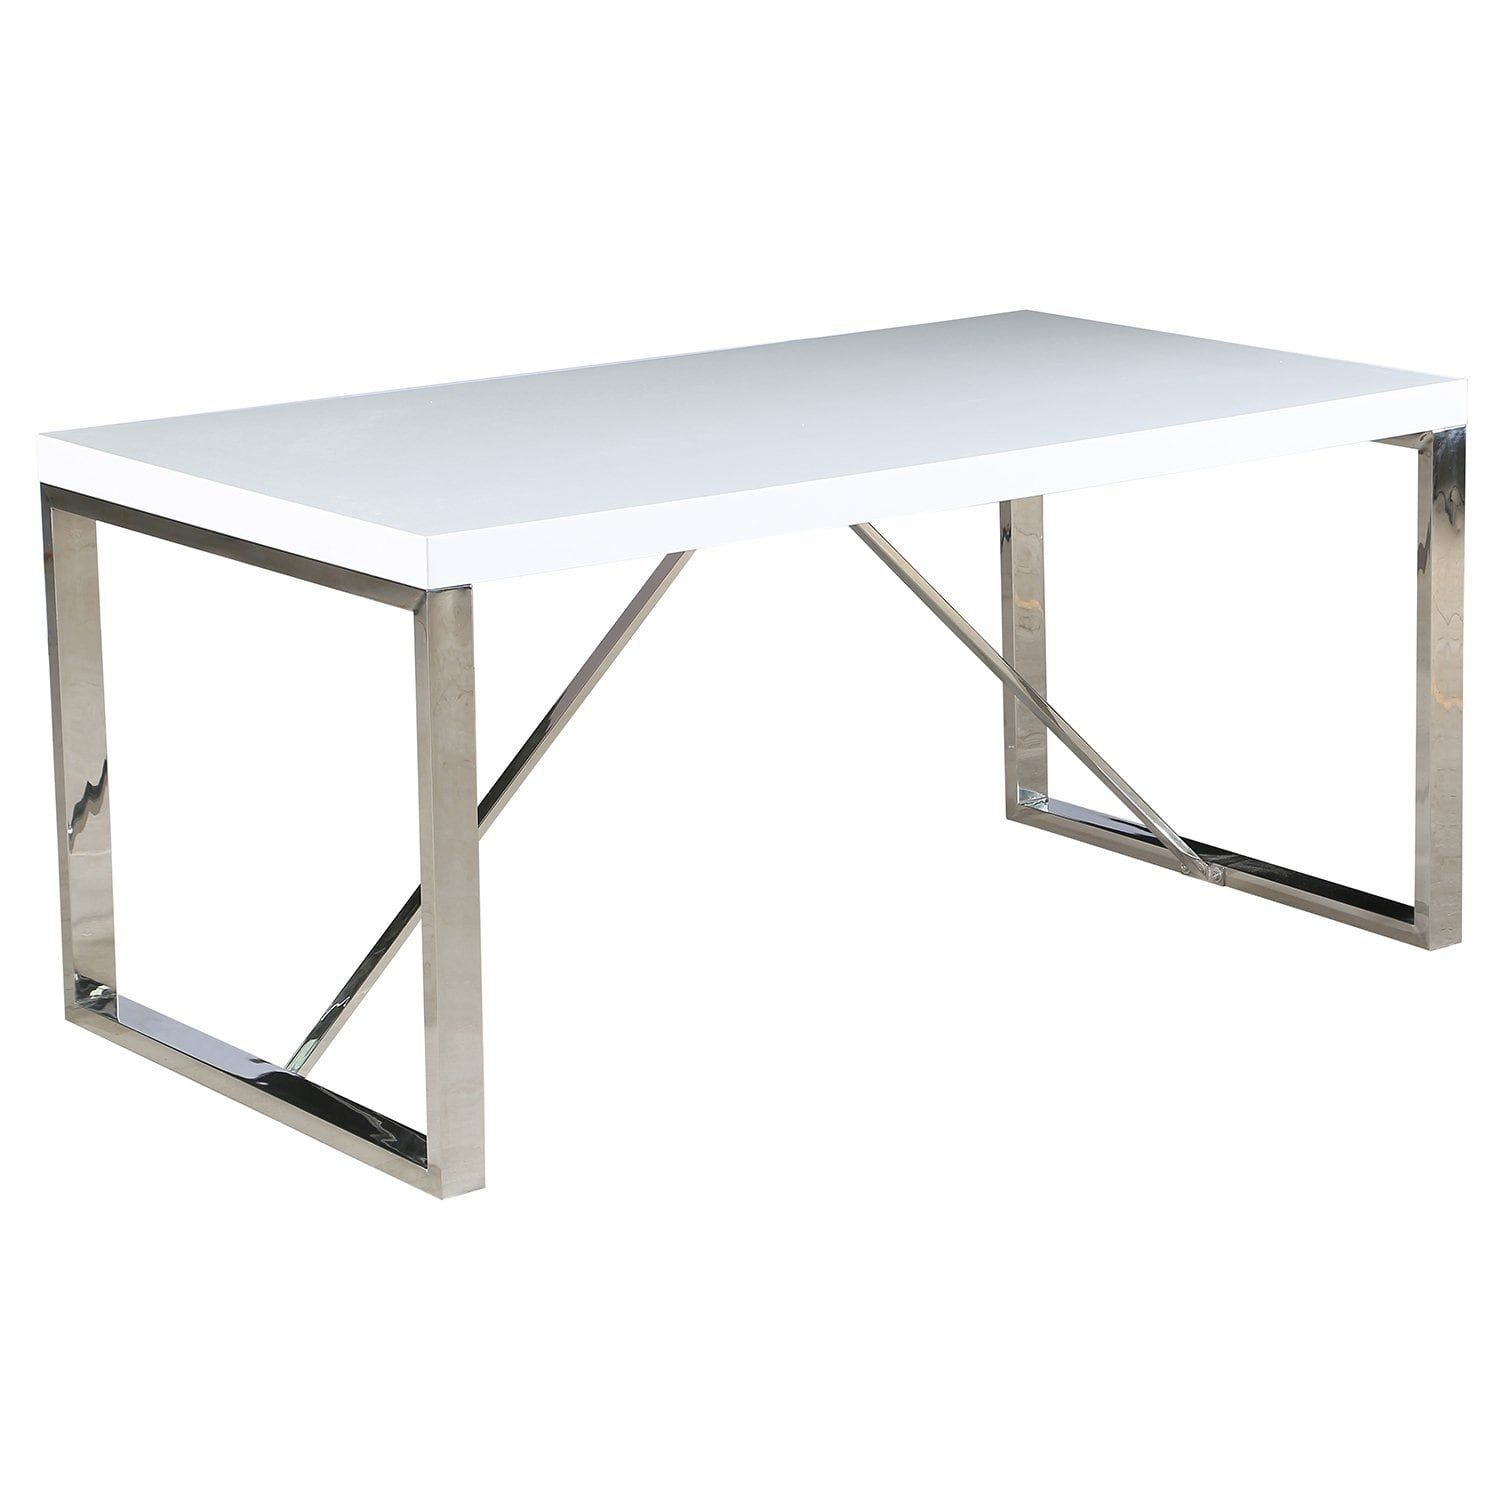 2xhome Modern Mid Century White Glossy Paint Wood Top Silver Chrome Steel  Leg Base Rectangle Dining Table Home Office Restaurant, Multi